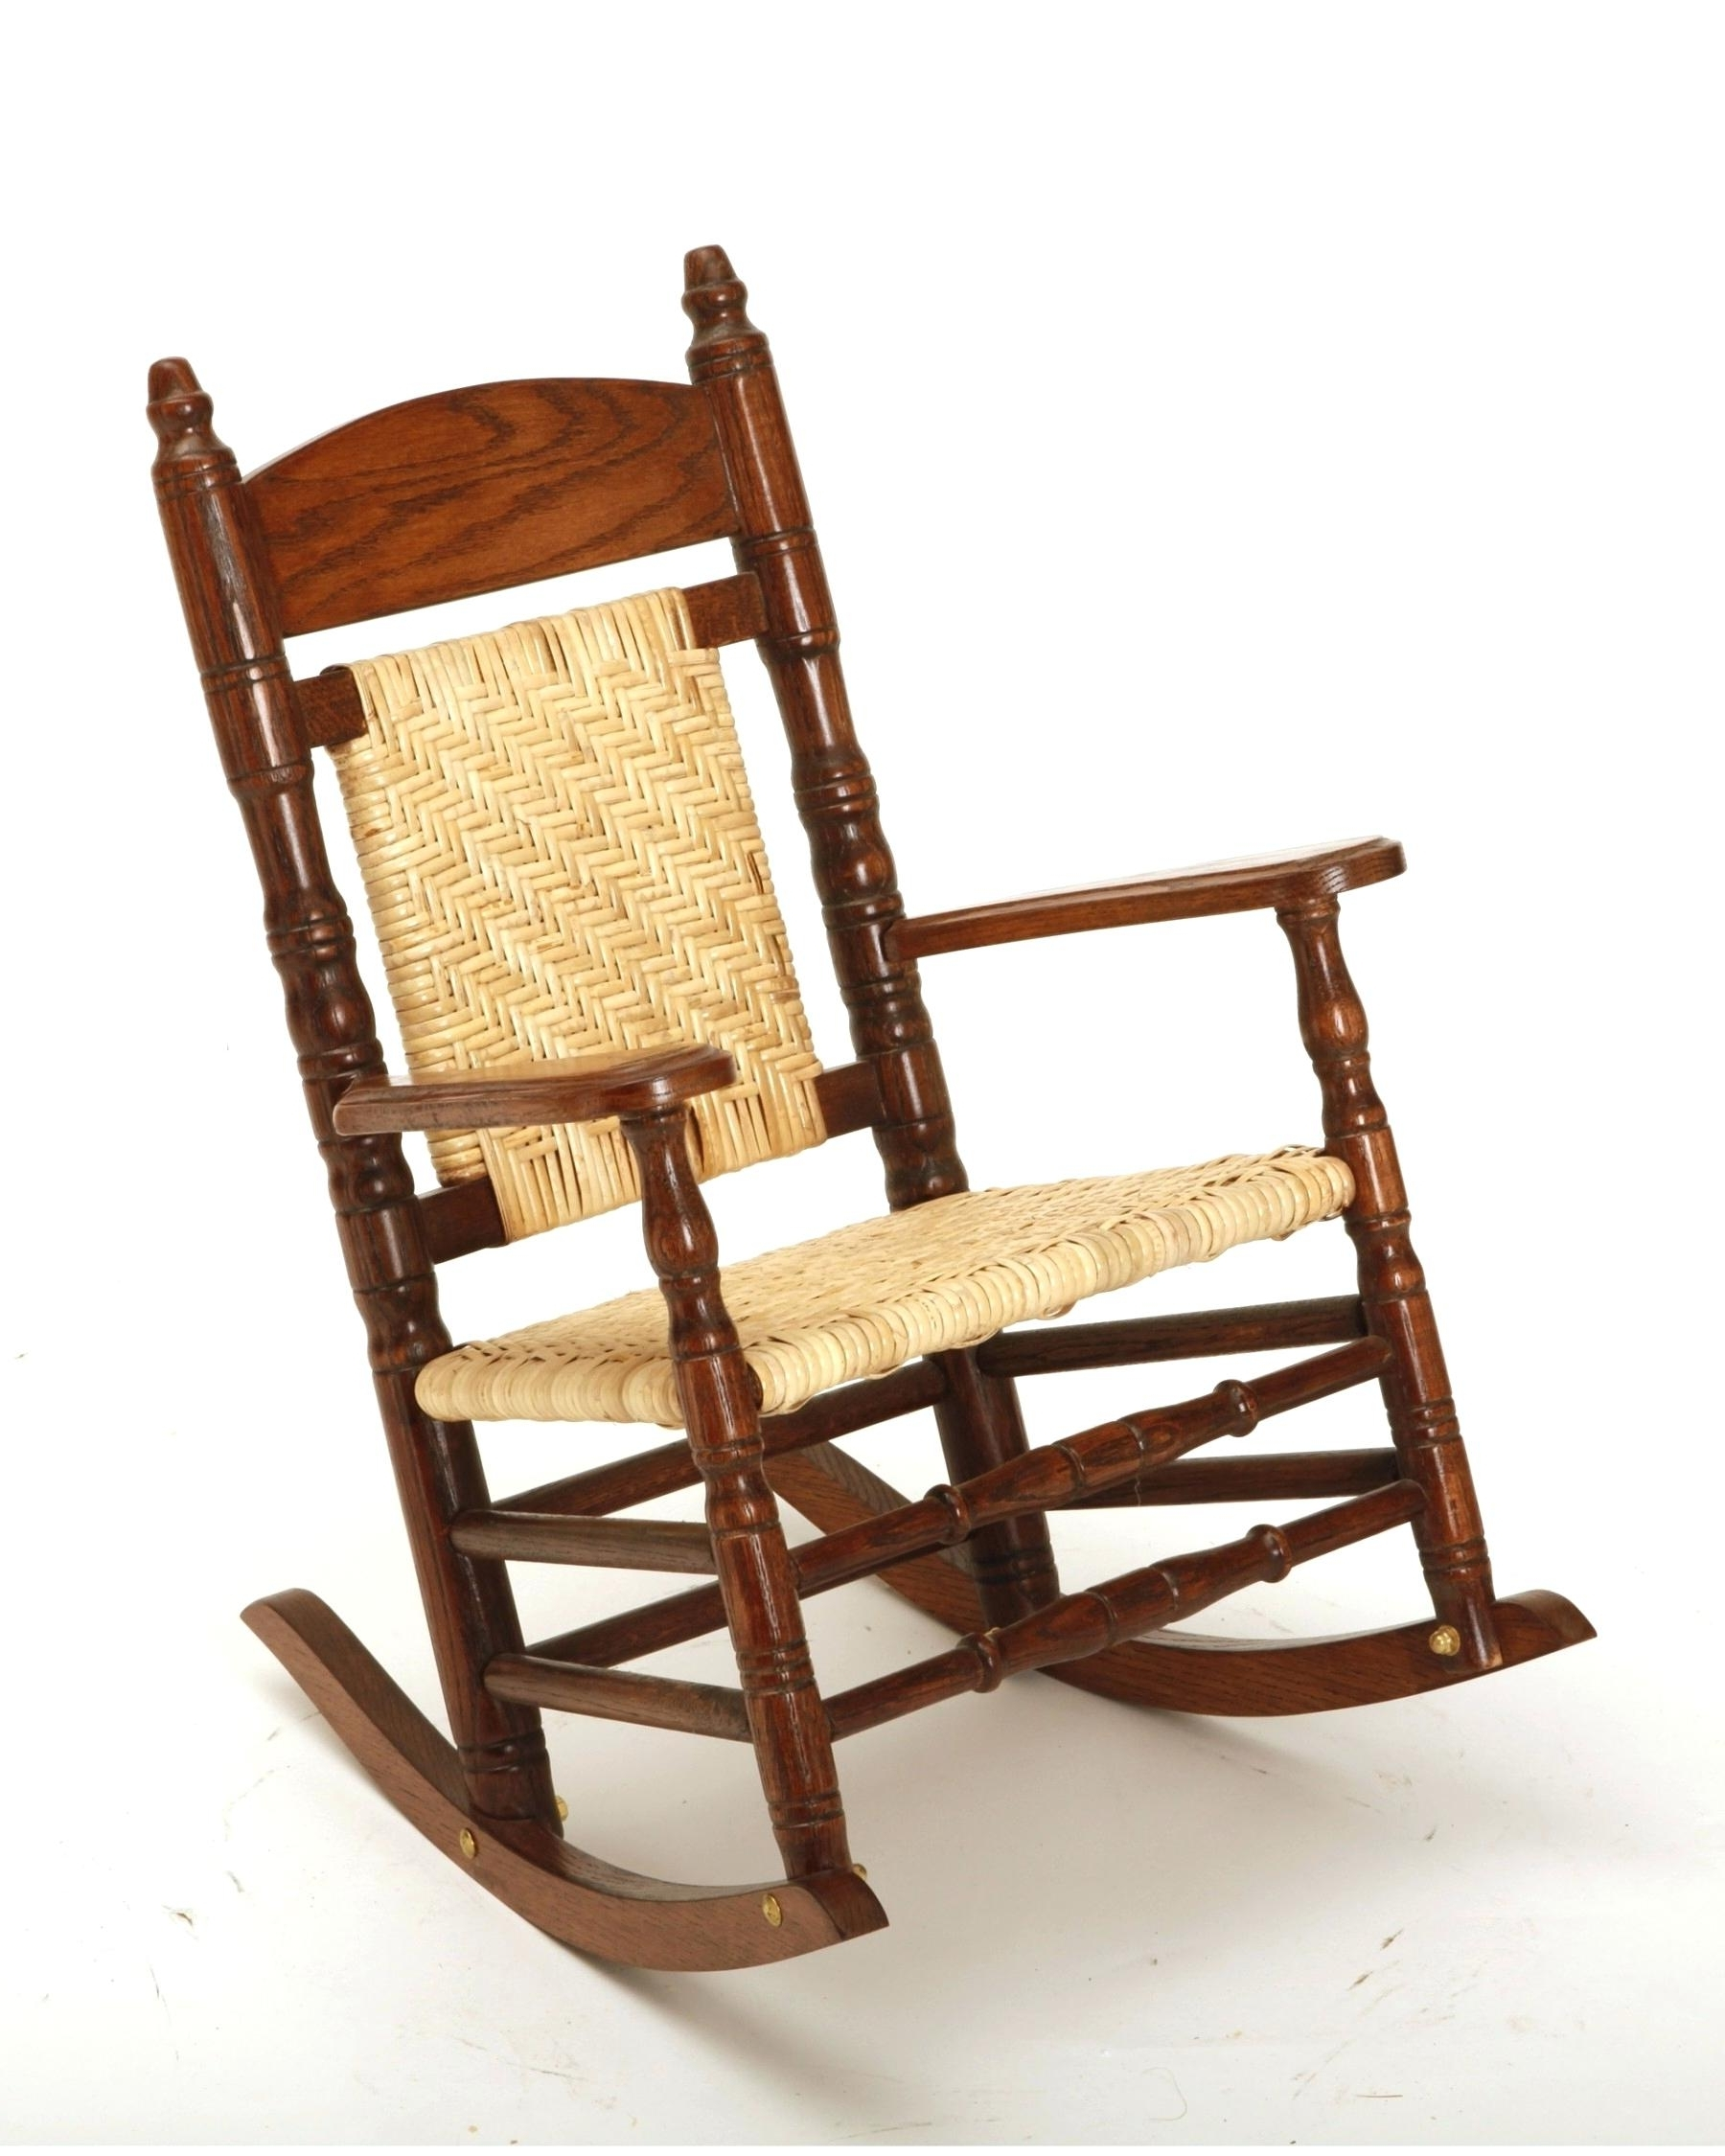 Heavy Duty Rocking Chair Interior Design Jobs Chicago App Doors Home Intended For Latest Manhattan Patio Grey Rocking Chairs (View 4 of 20)